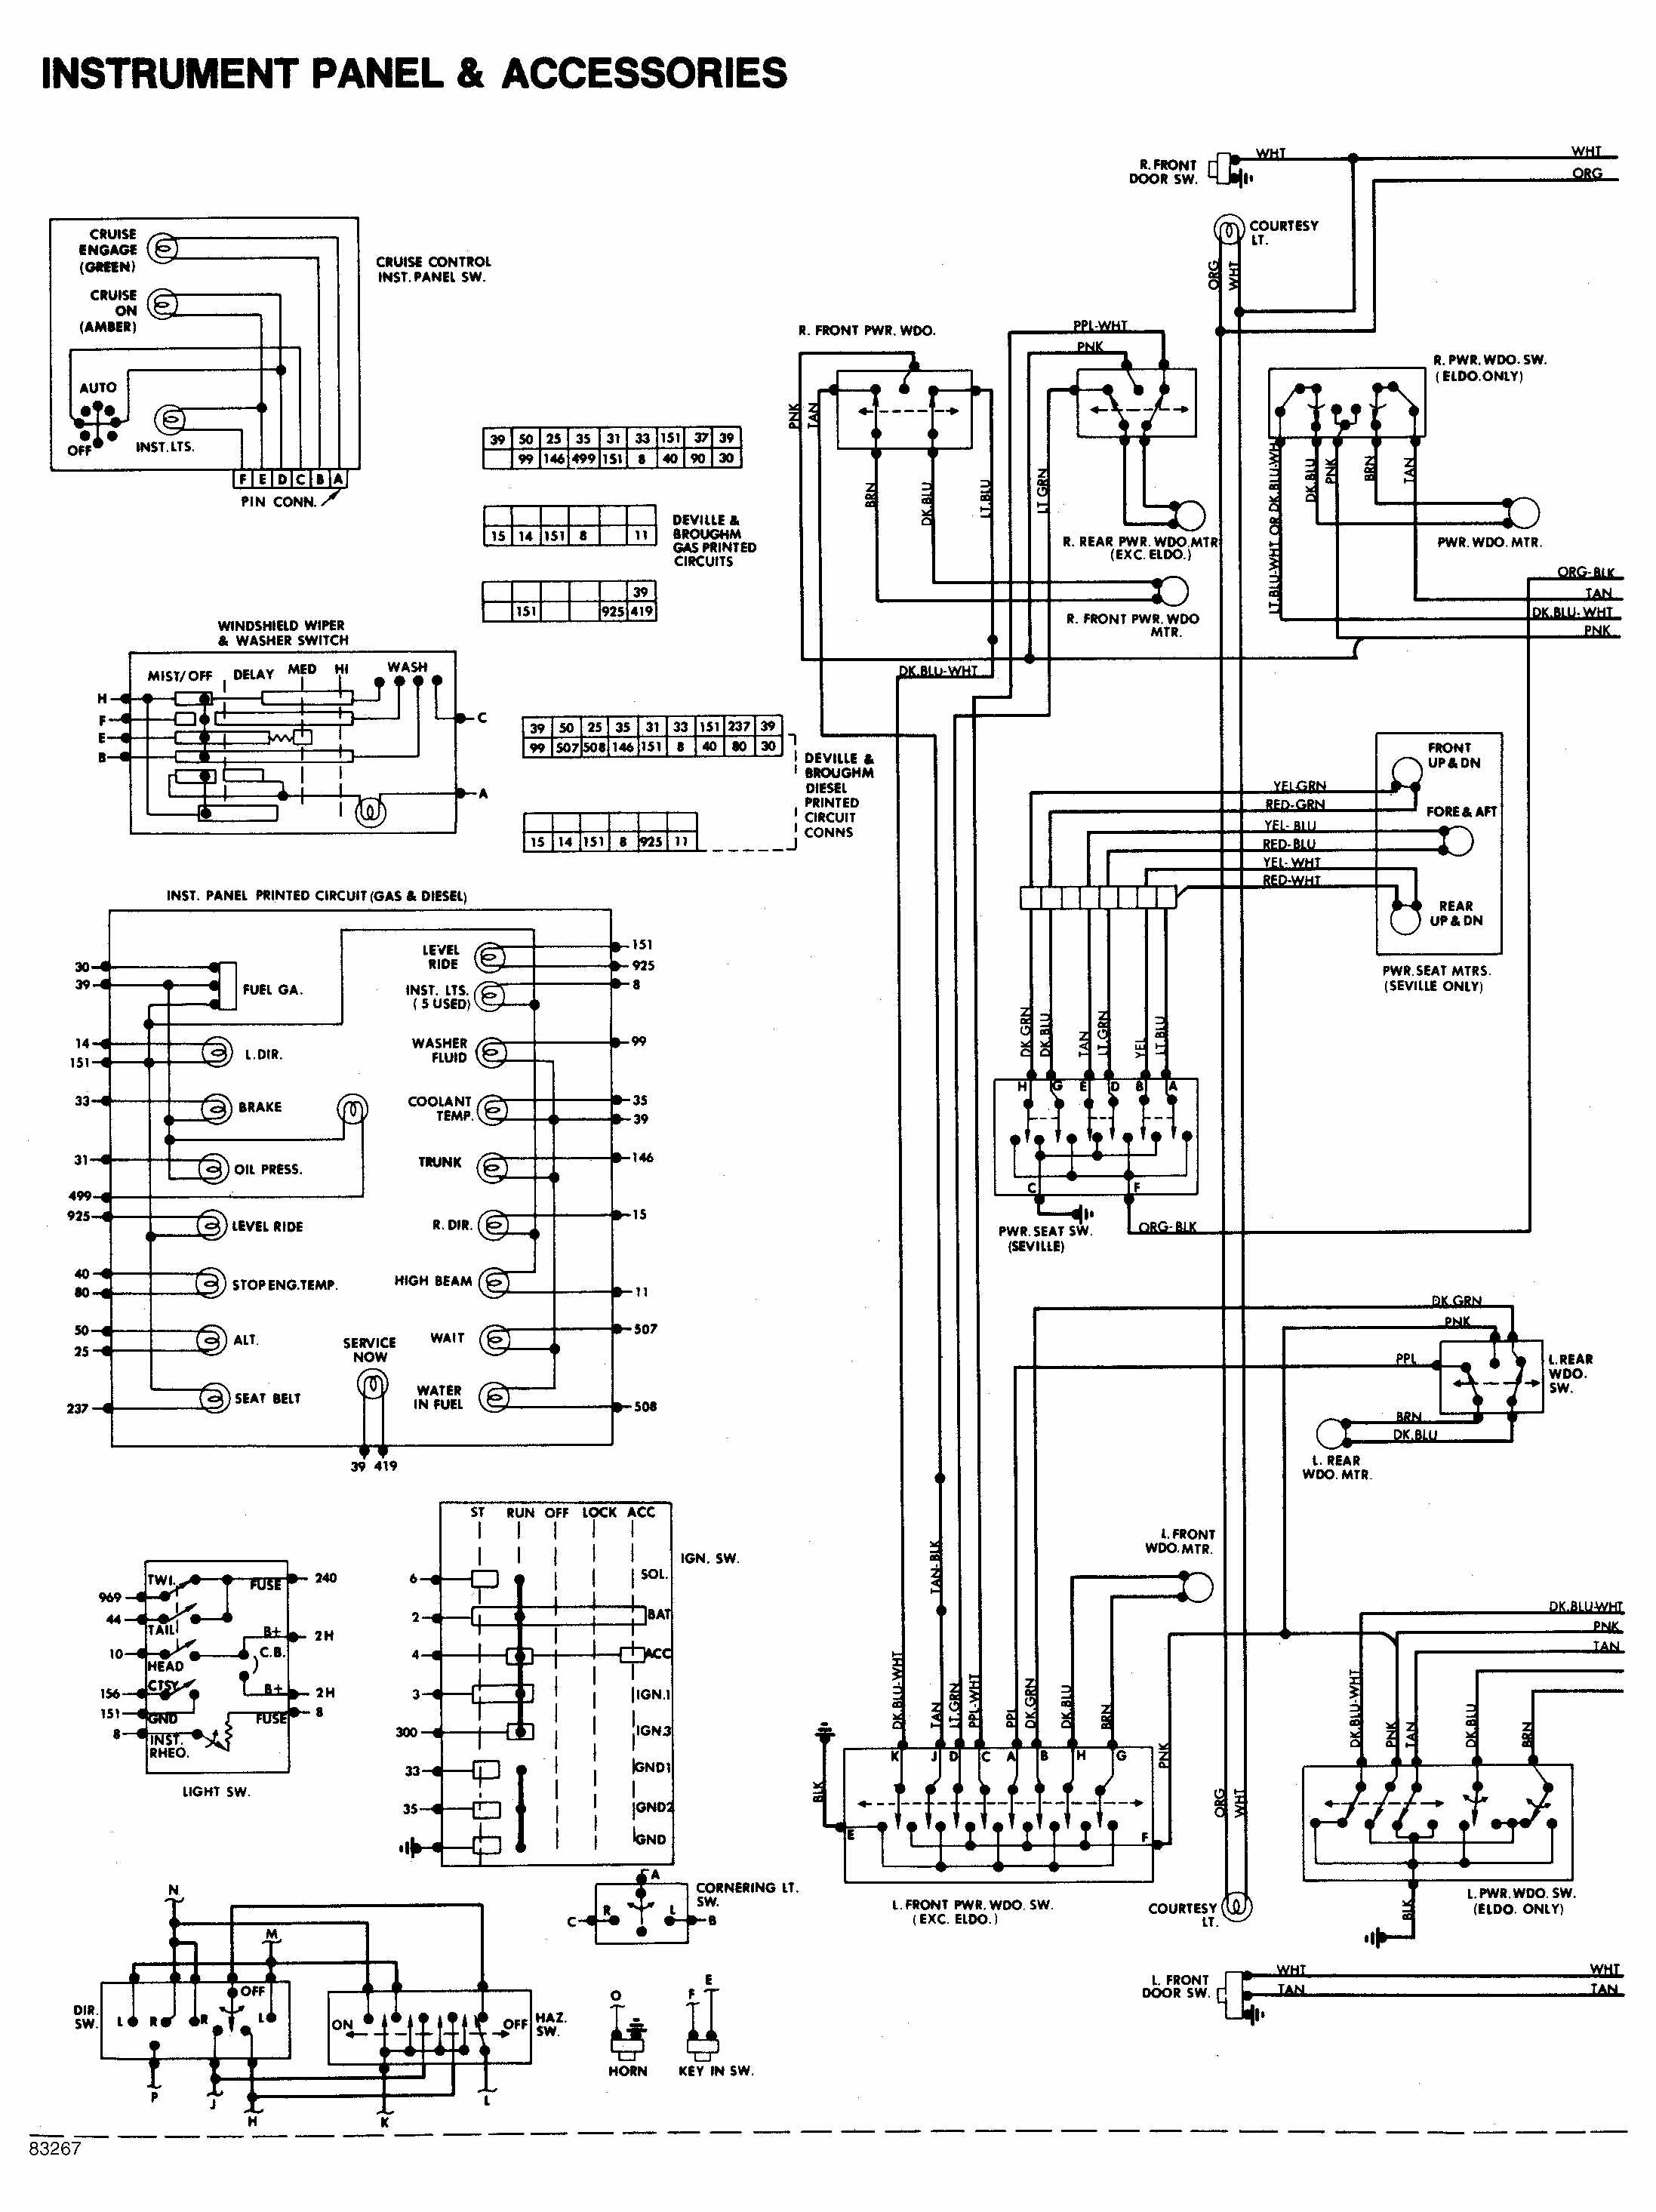 instrument panel and accessories wiring diagram of 1984 cadillac deville chevy diagrams GM Ignition Switch Wiring Diagram at suagrazia.org